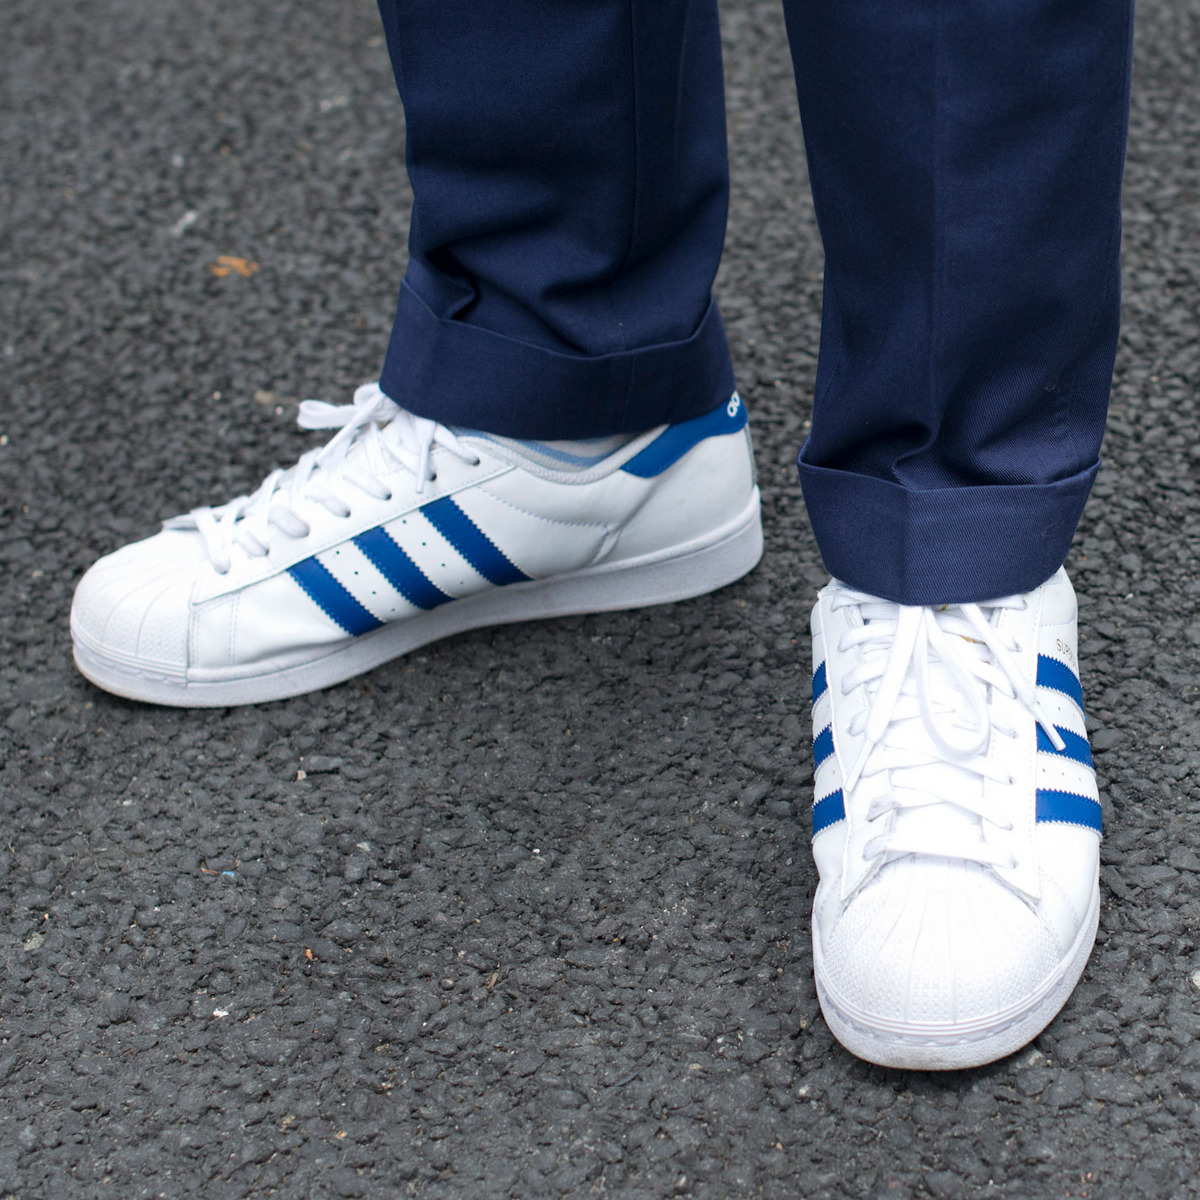 5 Adidas Shoes for Men 2019 | The Strategist | New York Magazine